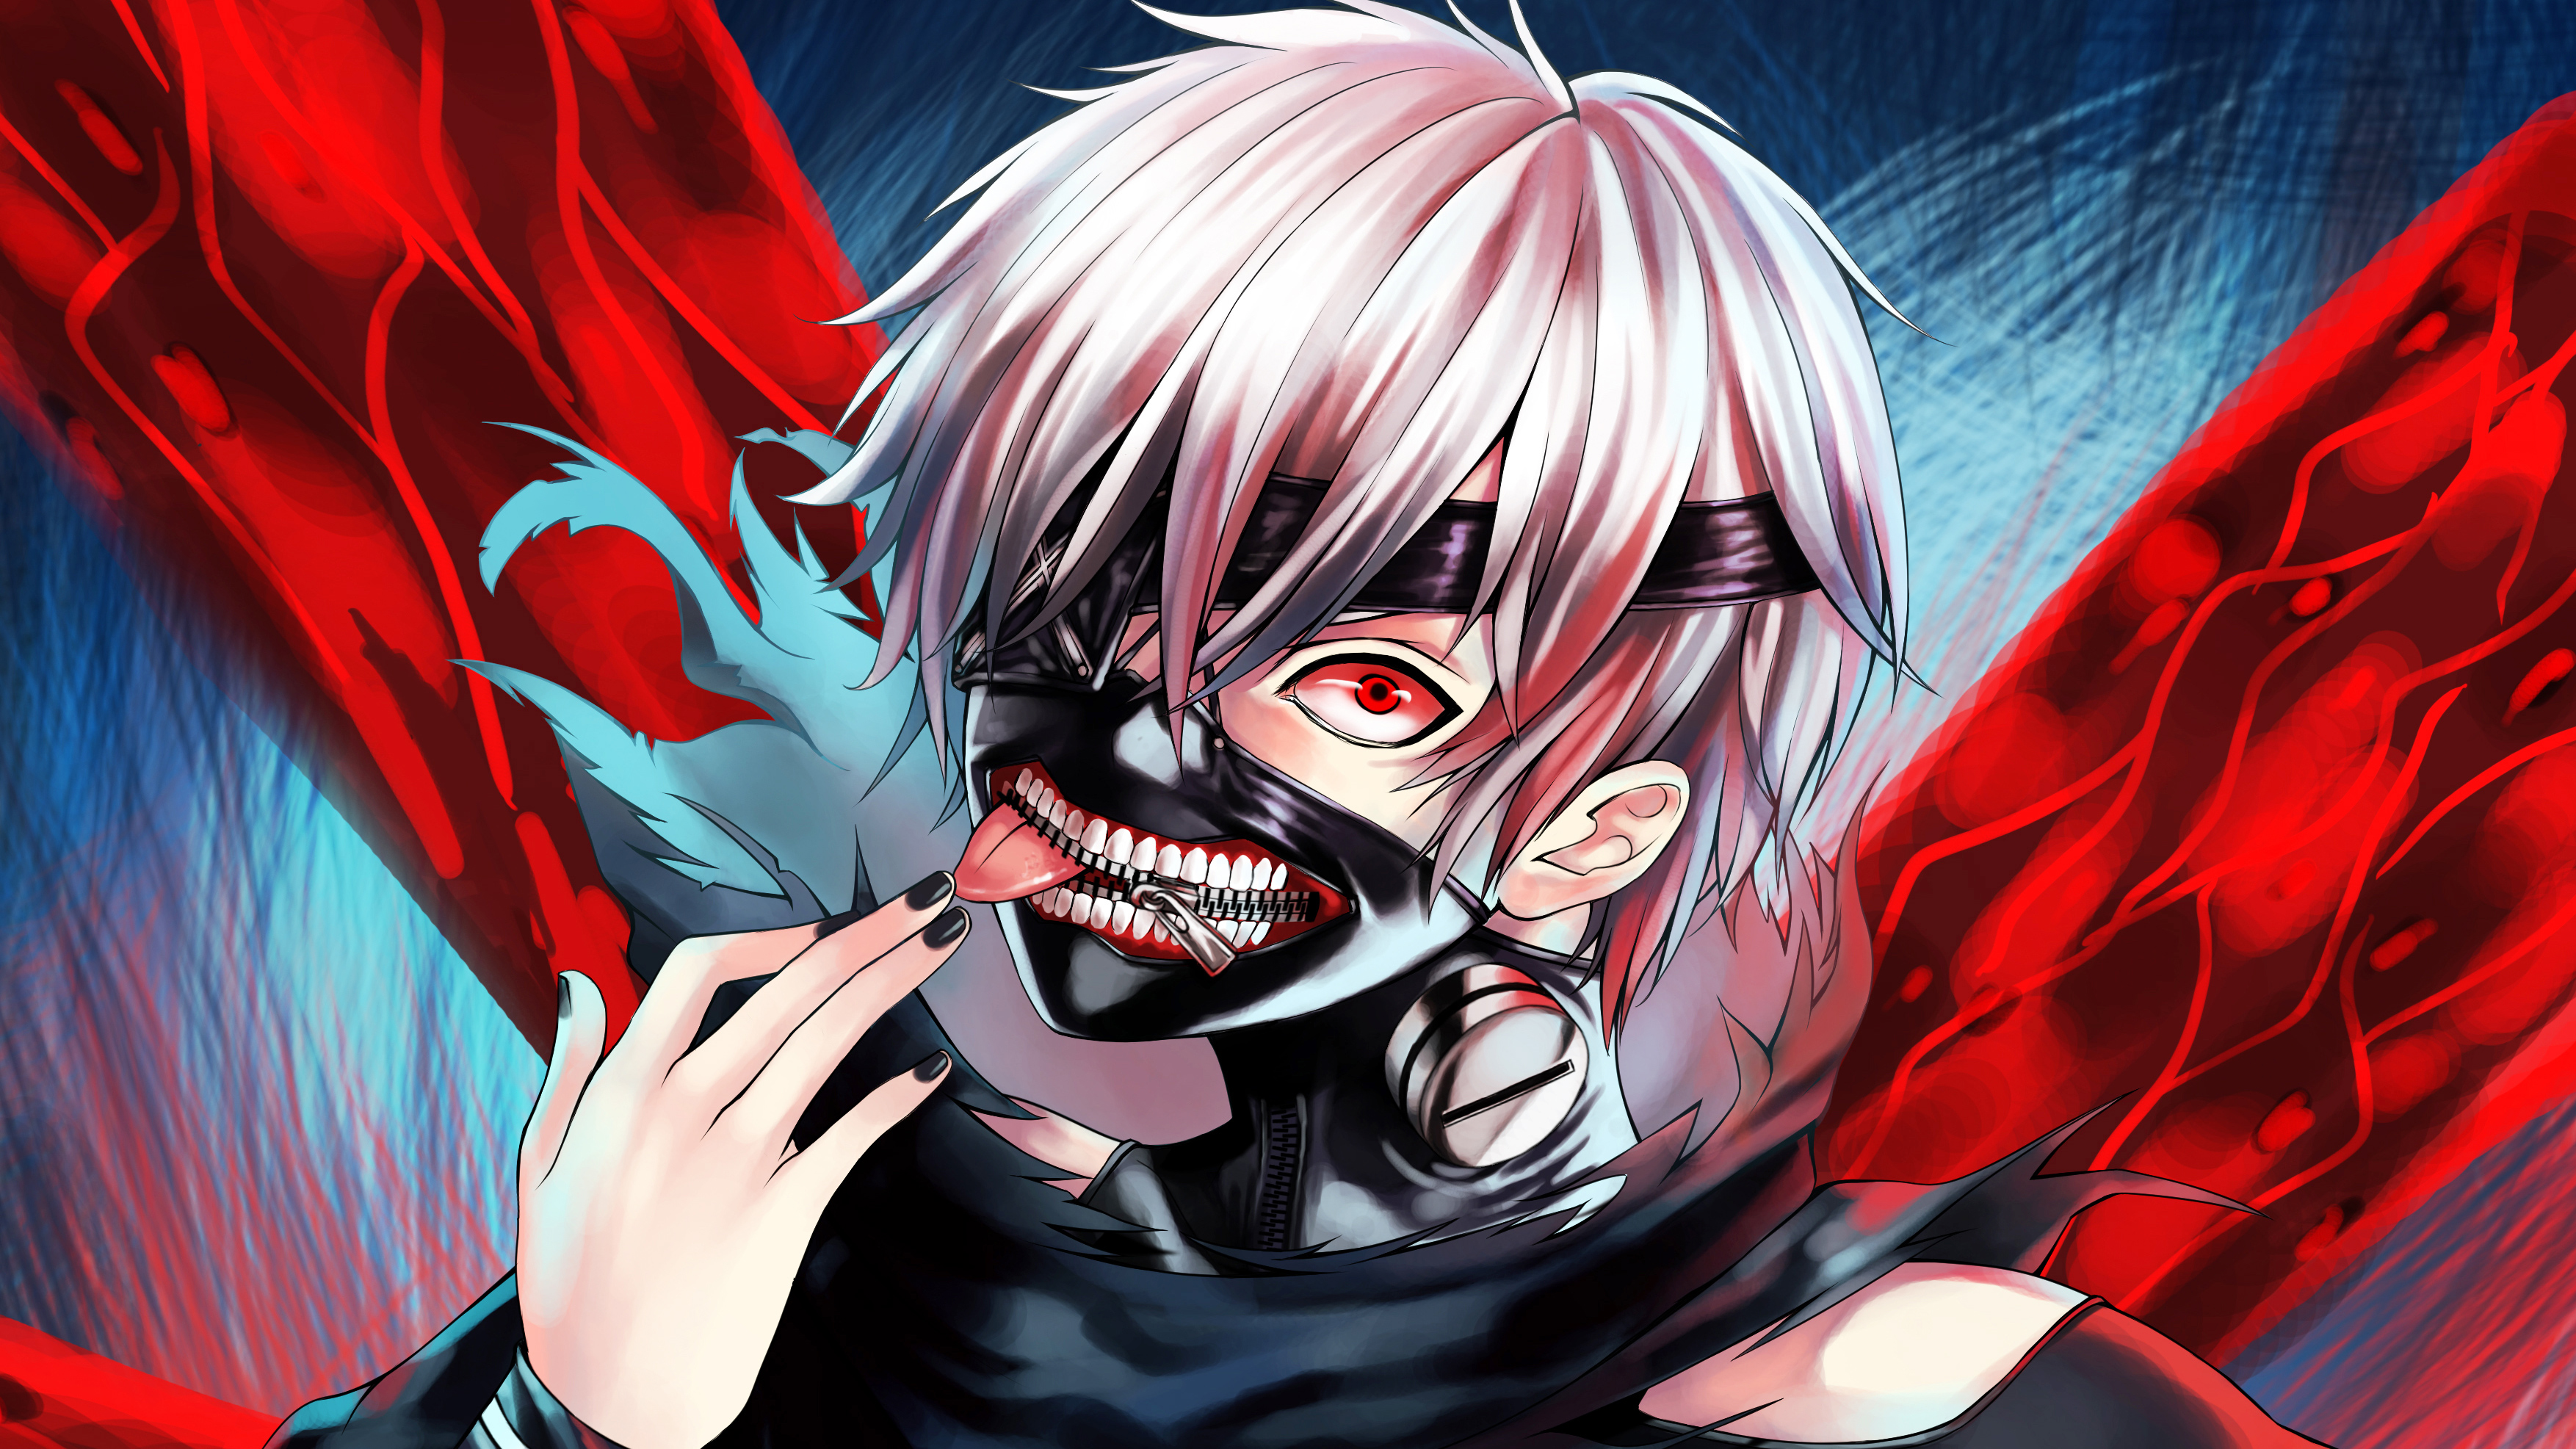 1336x768 Tokyo Ghoul Anime 4k Laptop Hd Hd 4k Wallpapers Images Backgrounds Photos And Pictures